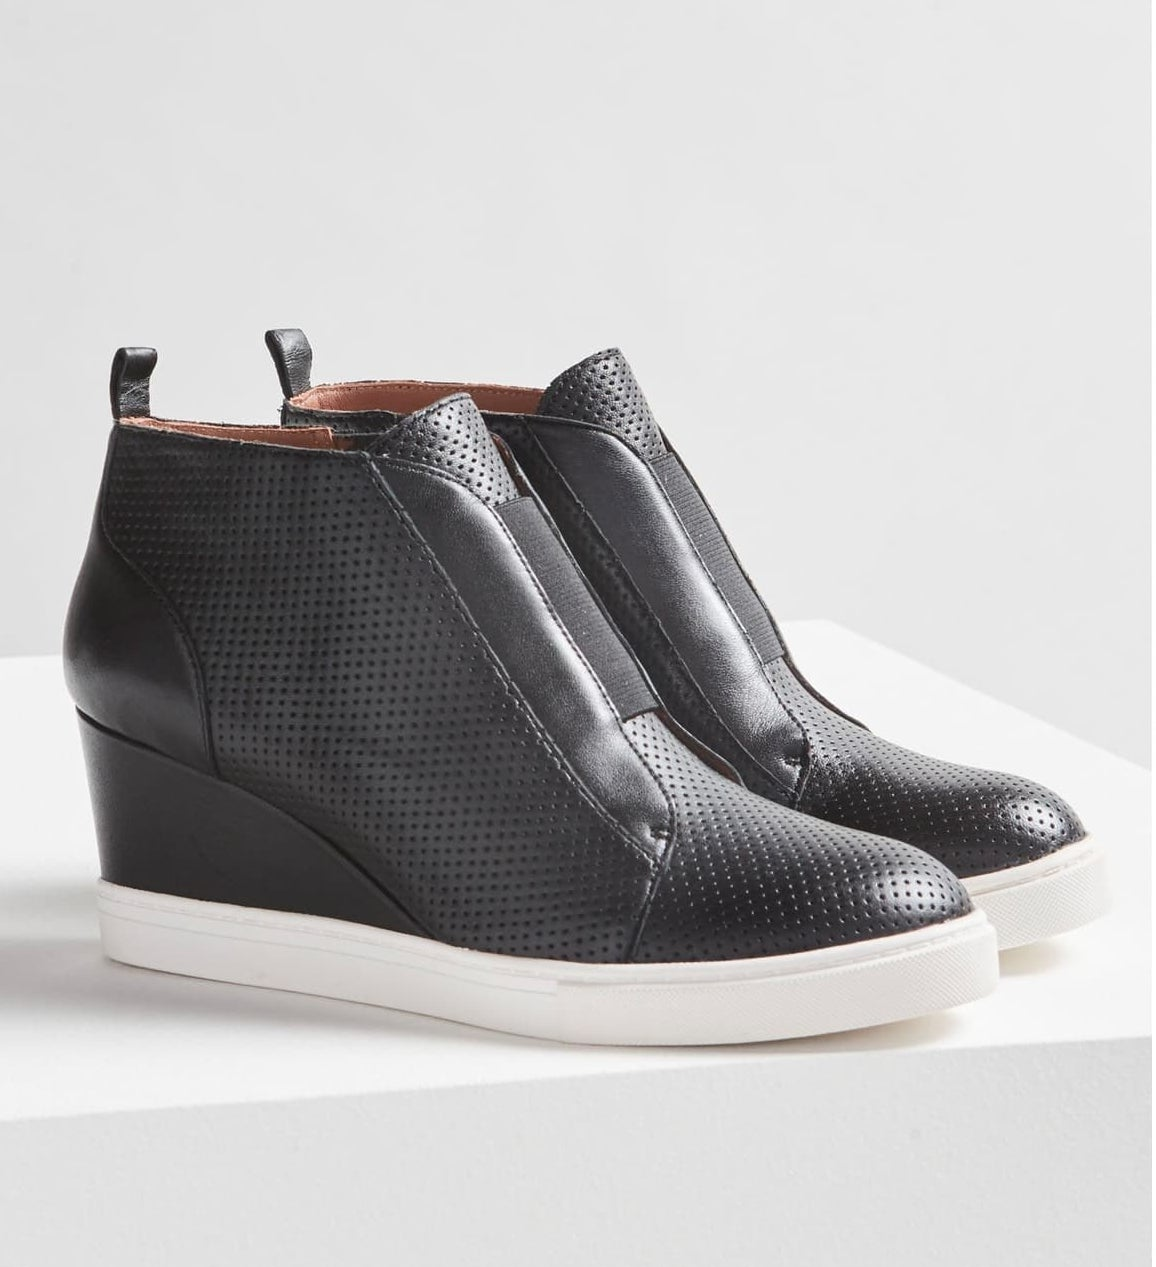 the leather wedges with a sneaker sole